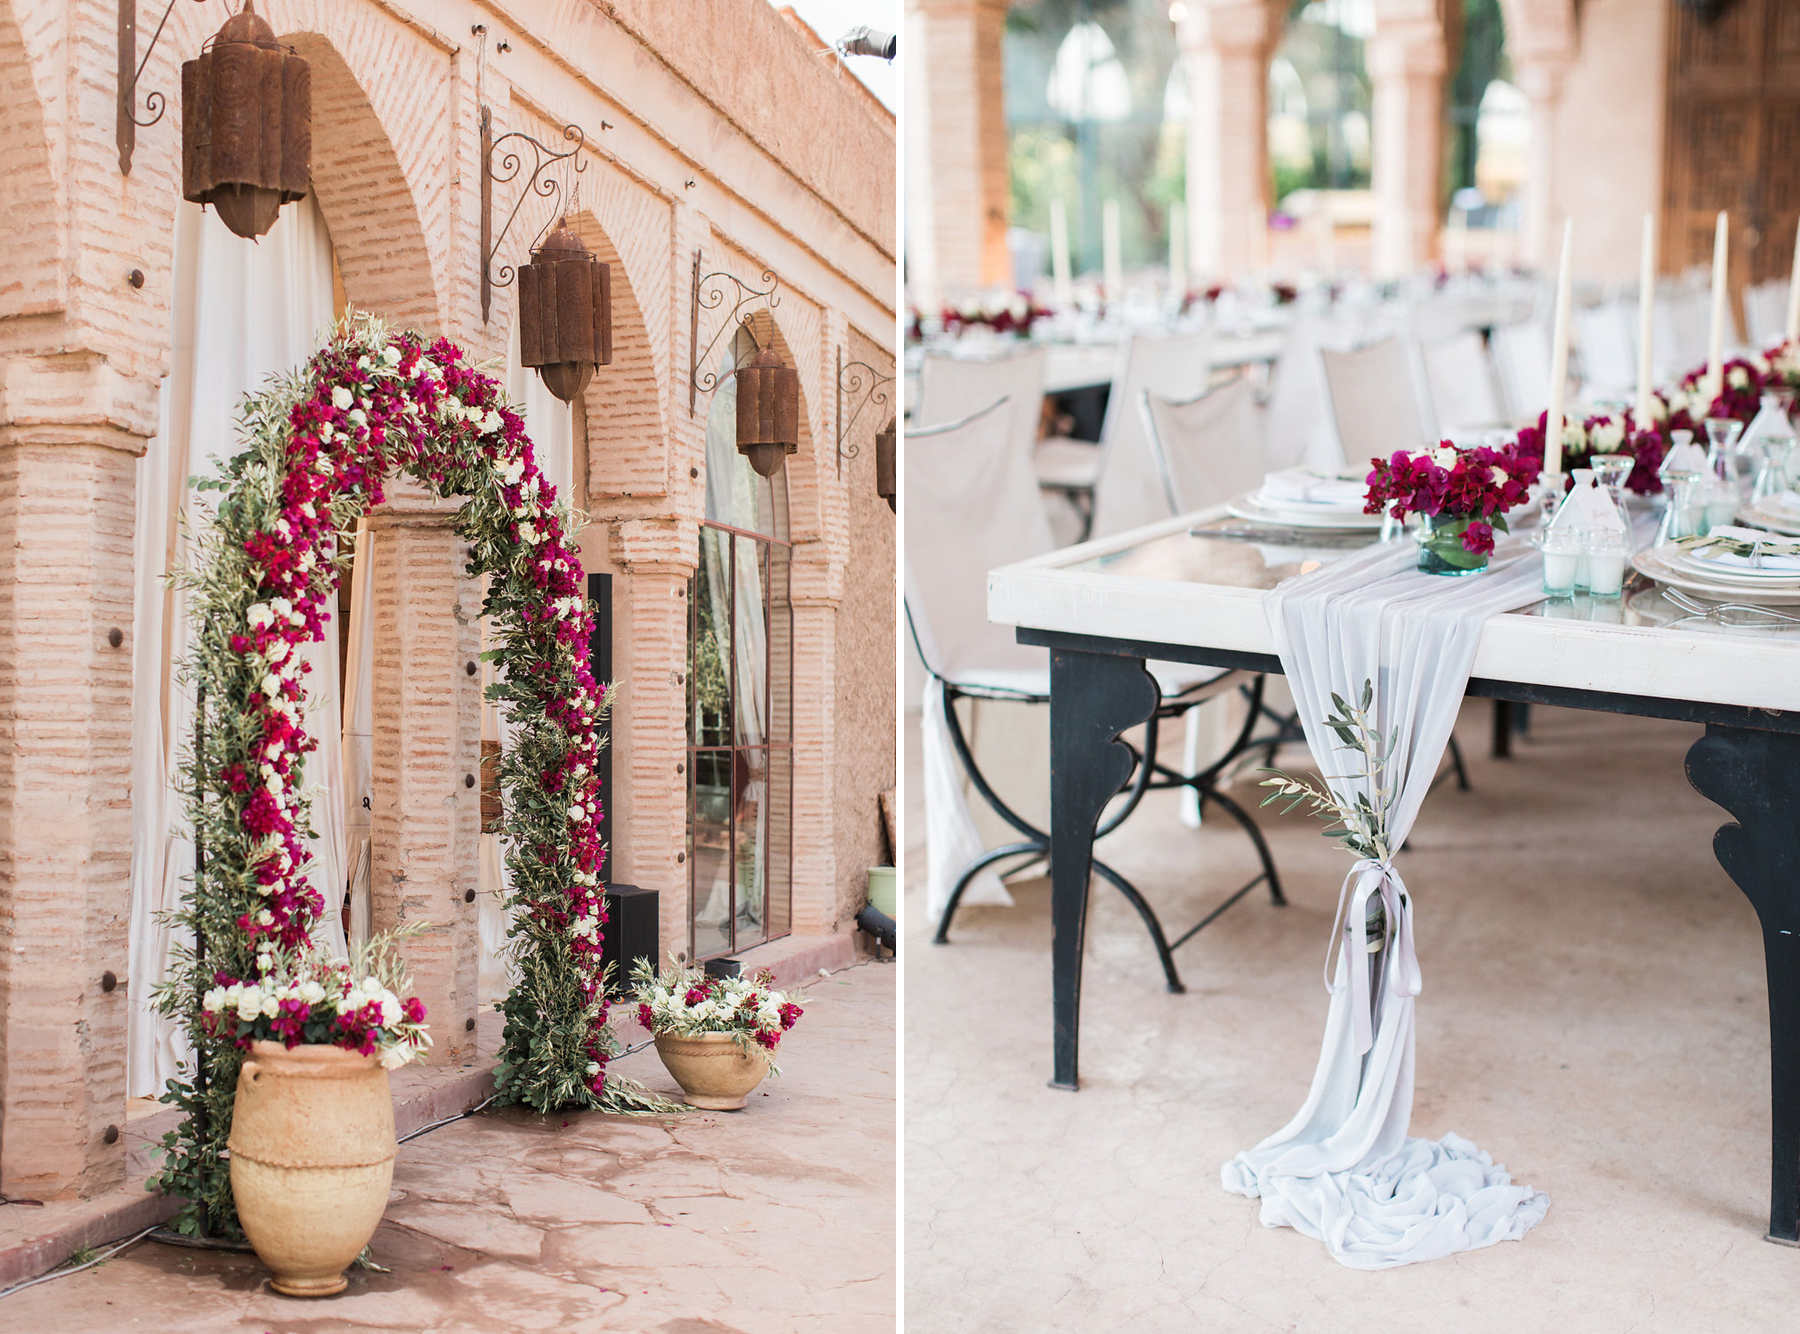 mariaraophotography_marrakechwedding-455-882-web.jpg